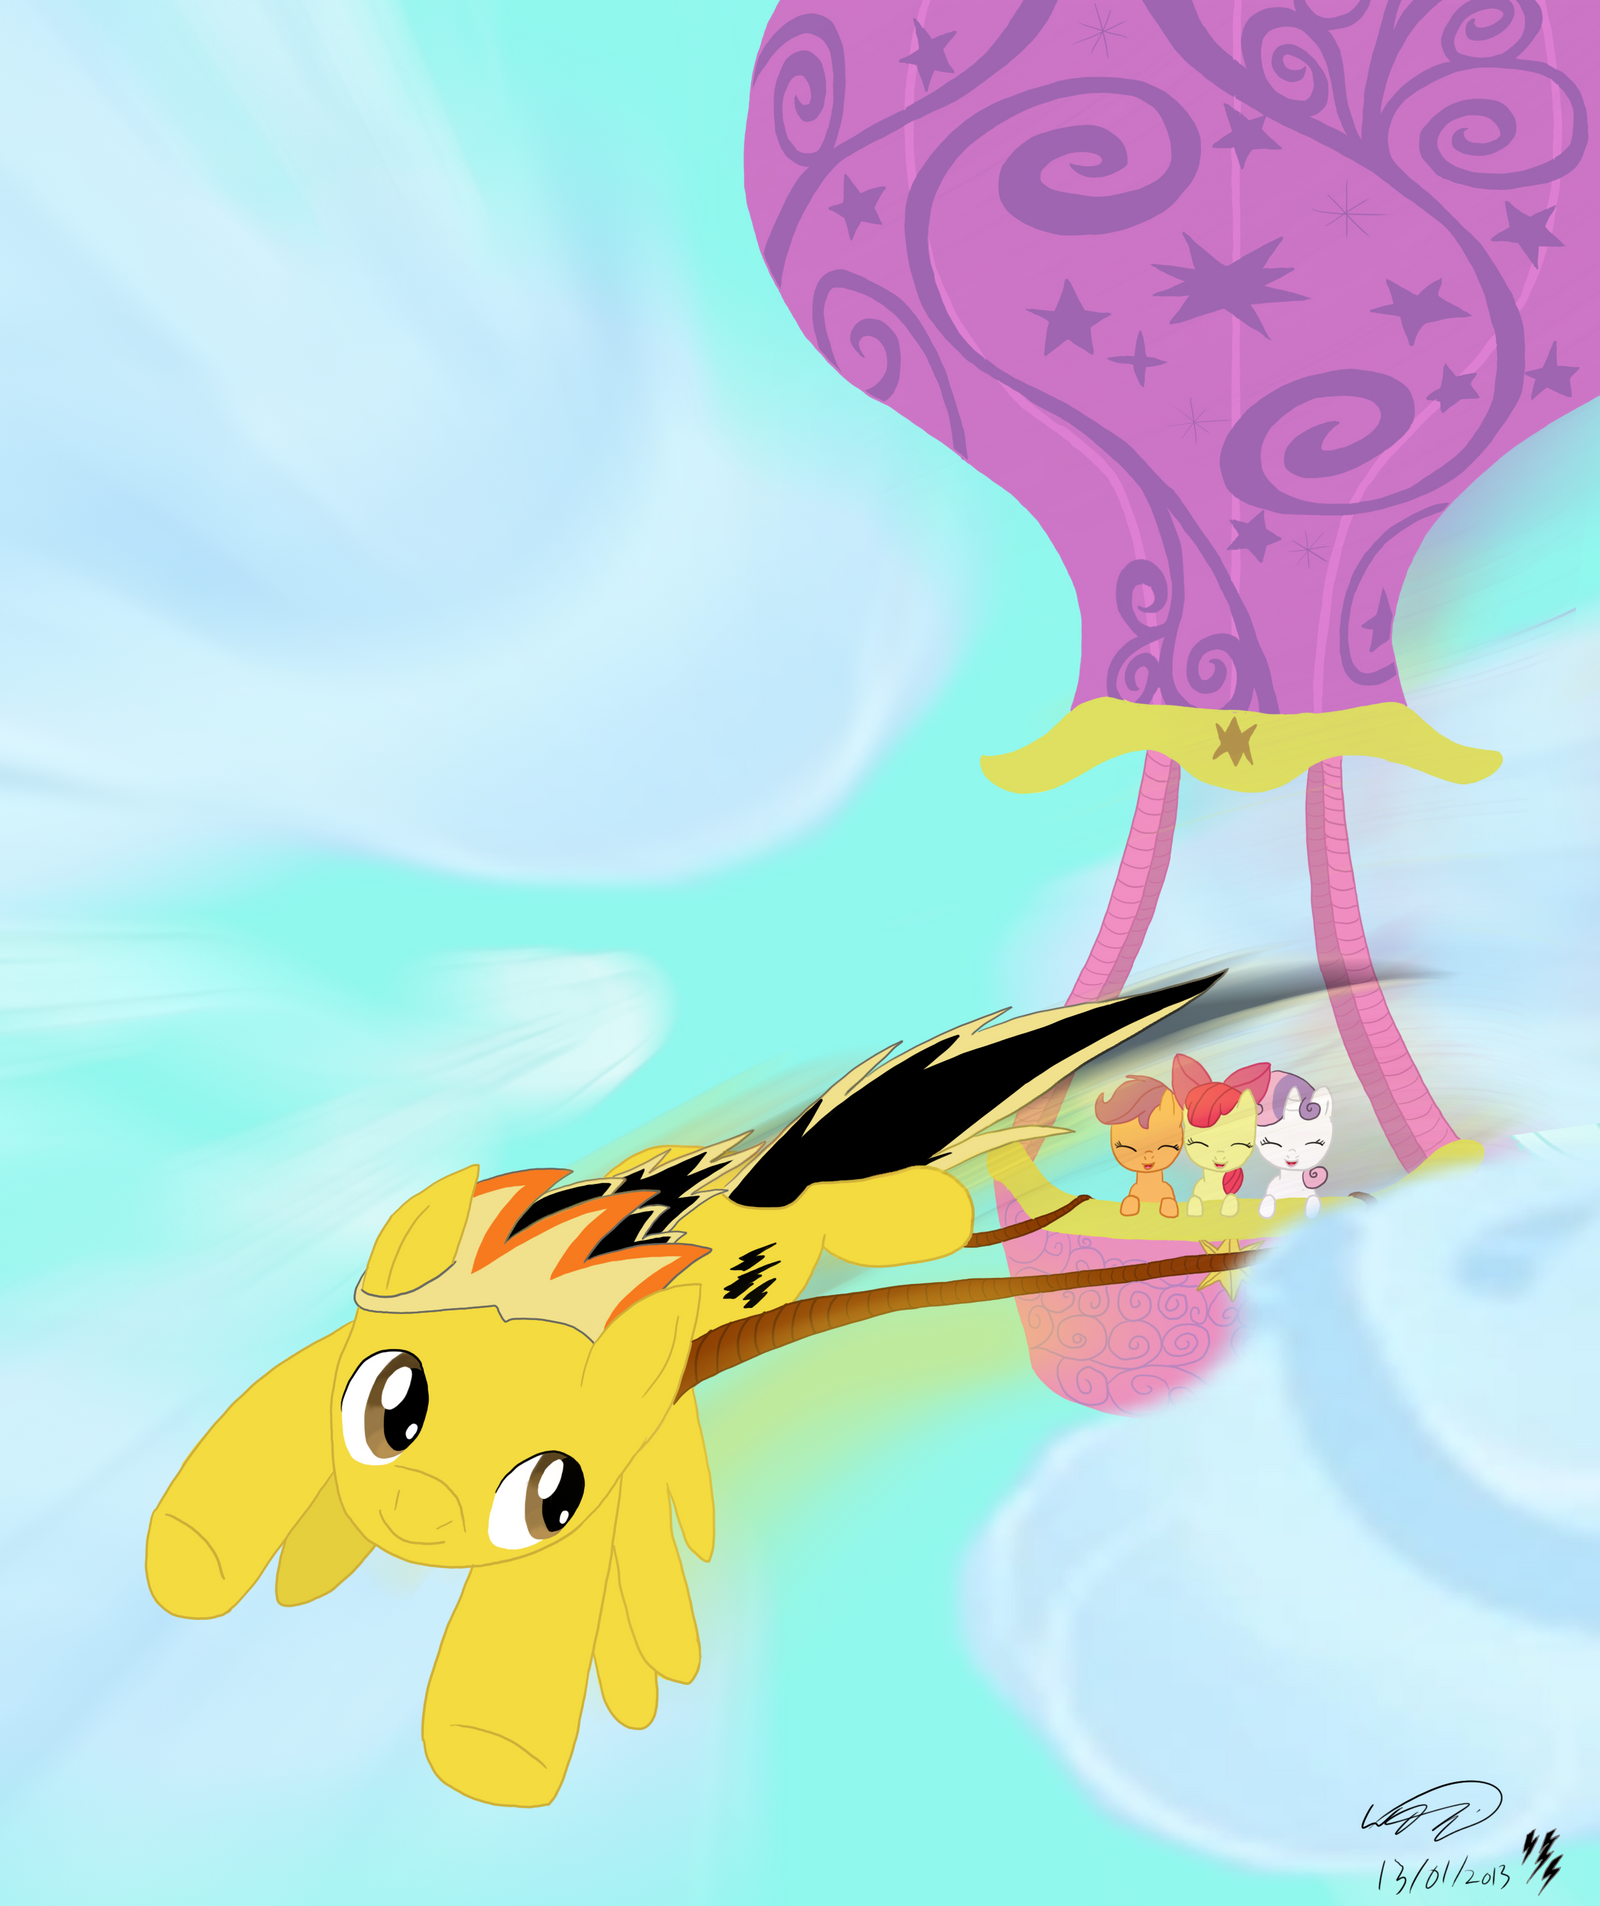 The CMC Balloon Ride by Electuroo